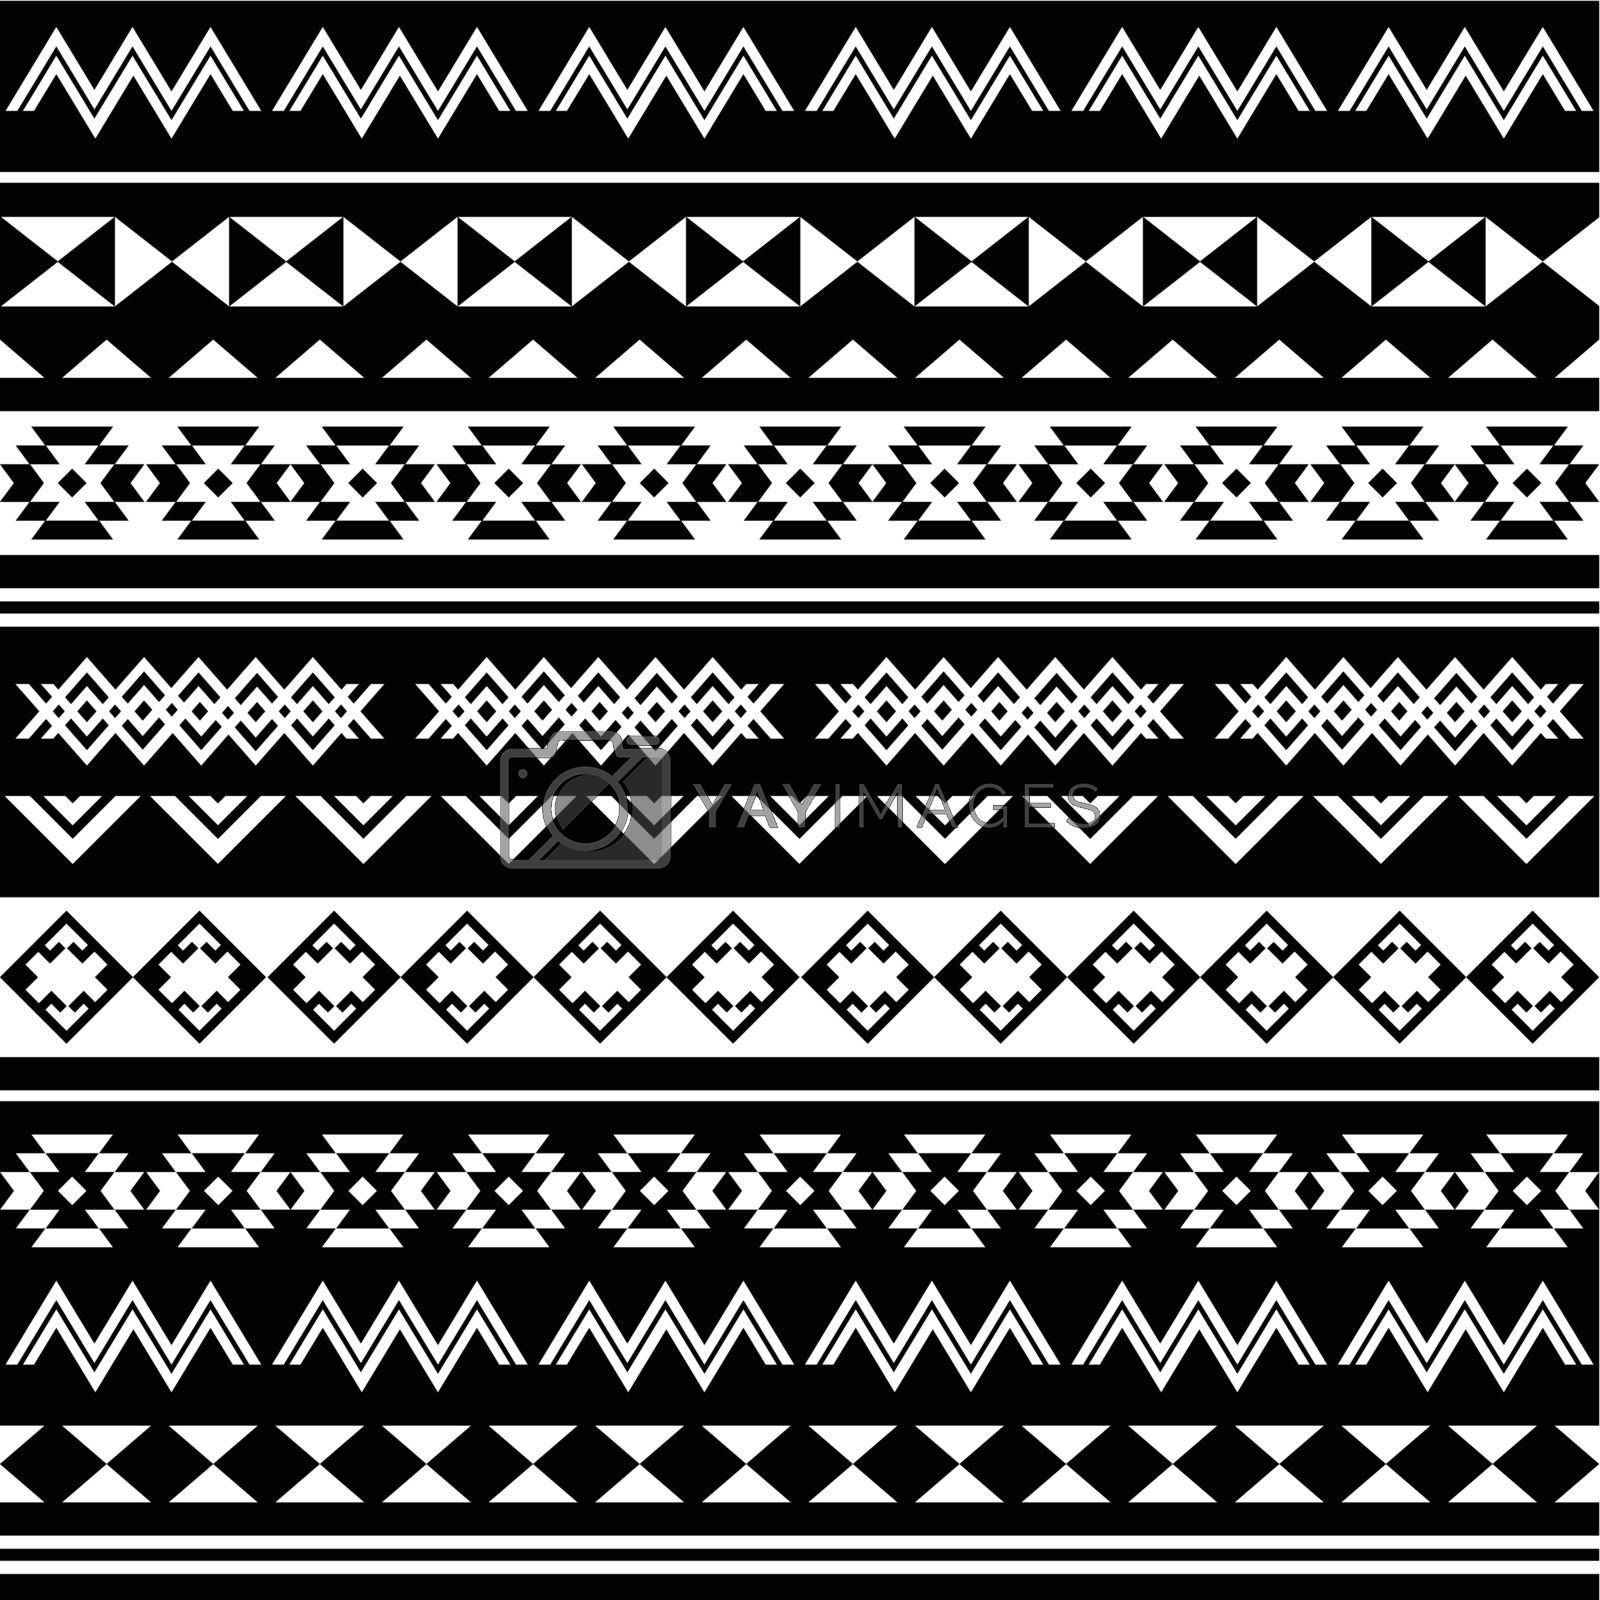 Vector seamless aztec ornament, ethnic background in black and white